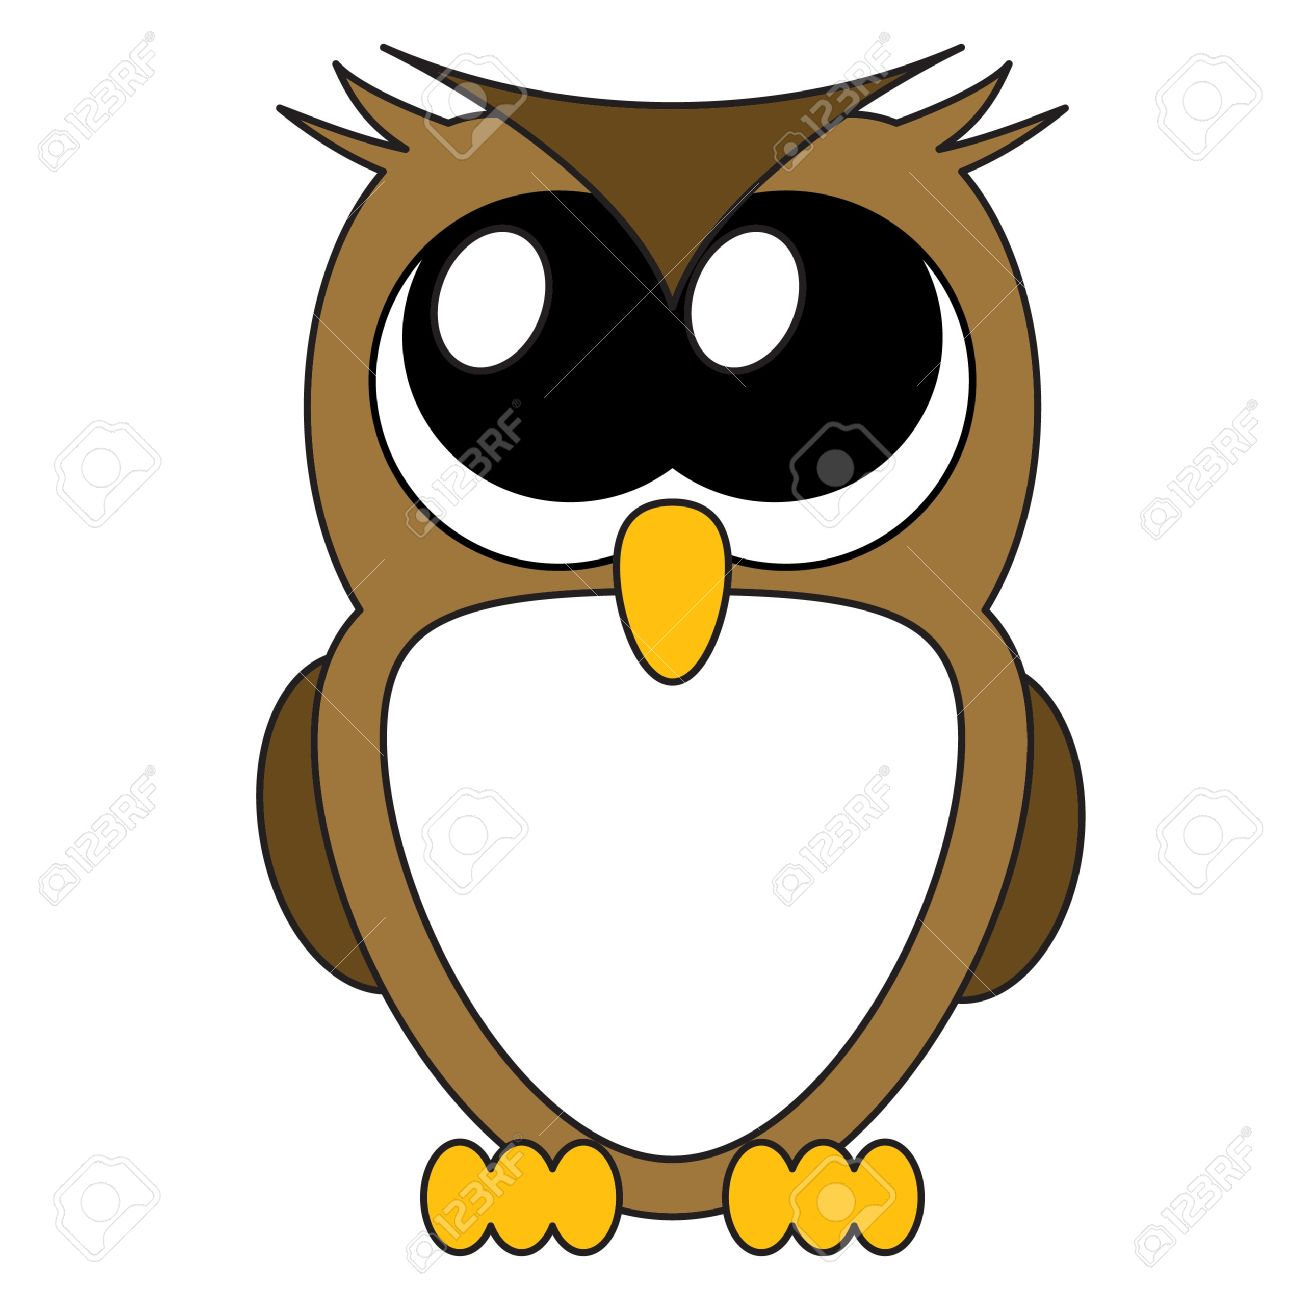 Cute Cartoon Owls With Big Eyes